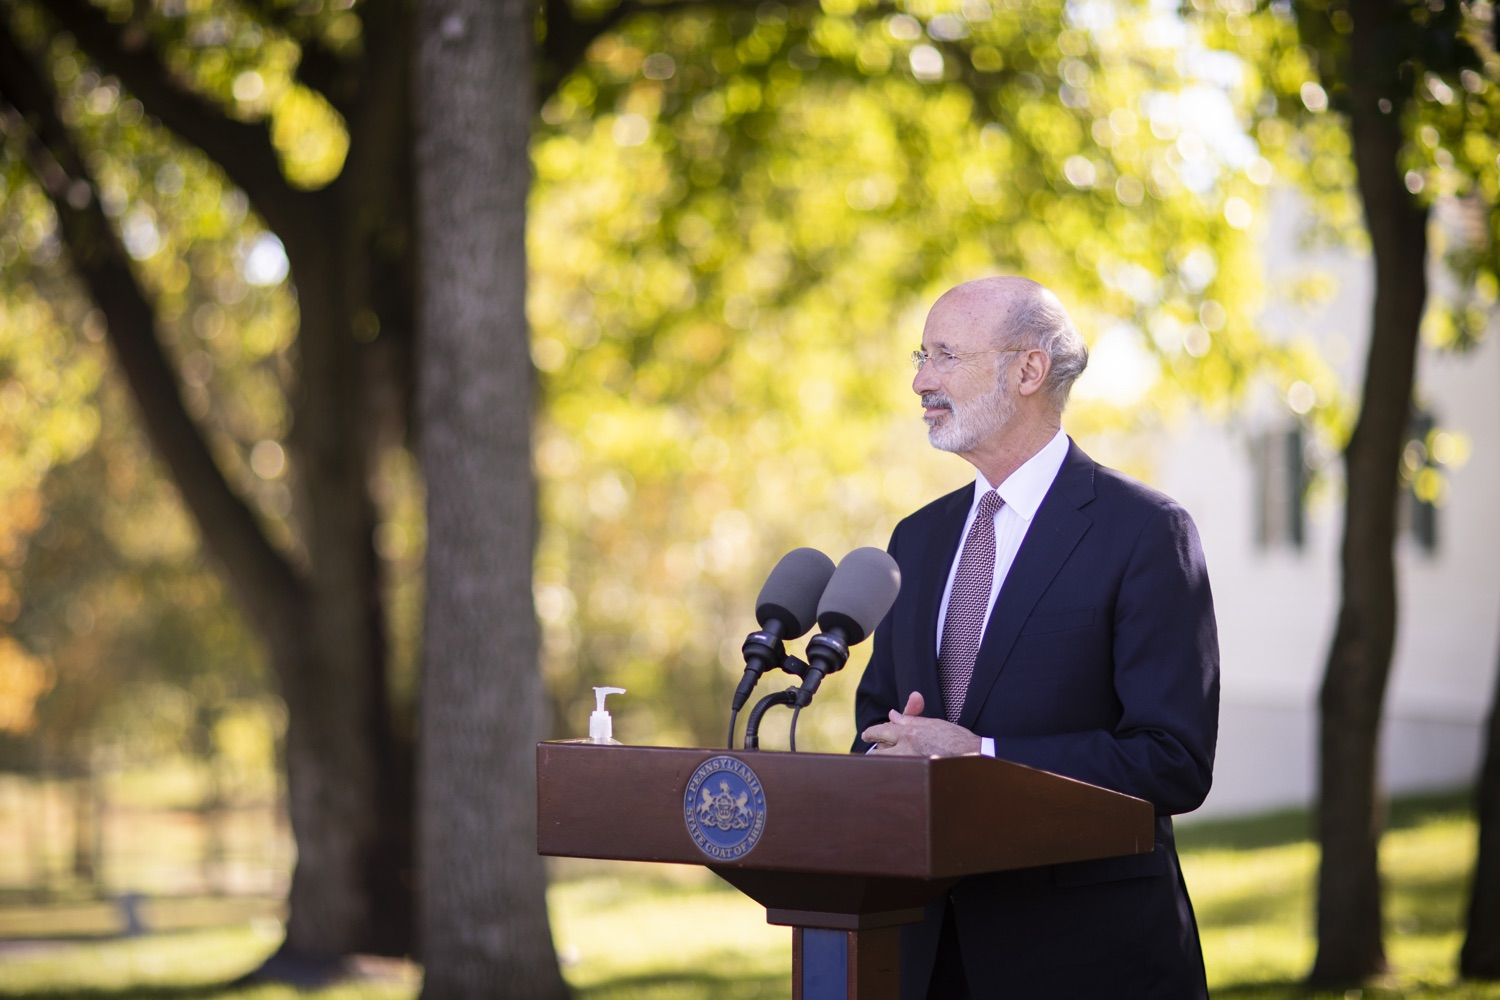 "<a href=""https://filesource.wostreaming.net/commonwealthofpa/photo/18321_gov_aca_dz_012.jpg"" target=""_blank"">⇣ Download Photo<br></a>Pennsylvania Governor Tom Wolf speaking to the press.  As the number of positive COVID-19 cases rise in Pennsylvania and as we enter flu season, protecting the Affordable Care Act (ACA) and ensuring that all Pennsylvanians have access to health coverage are more important than ever, Governor Tom Wolf said today in Chester County. The governor was joined by local elected officials and representatives from local health care organizations. Landenberg, PA  October 15, 2020"